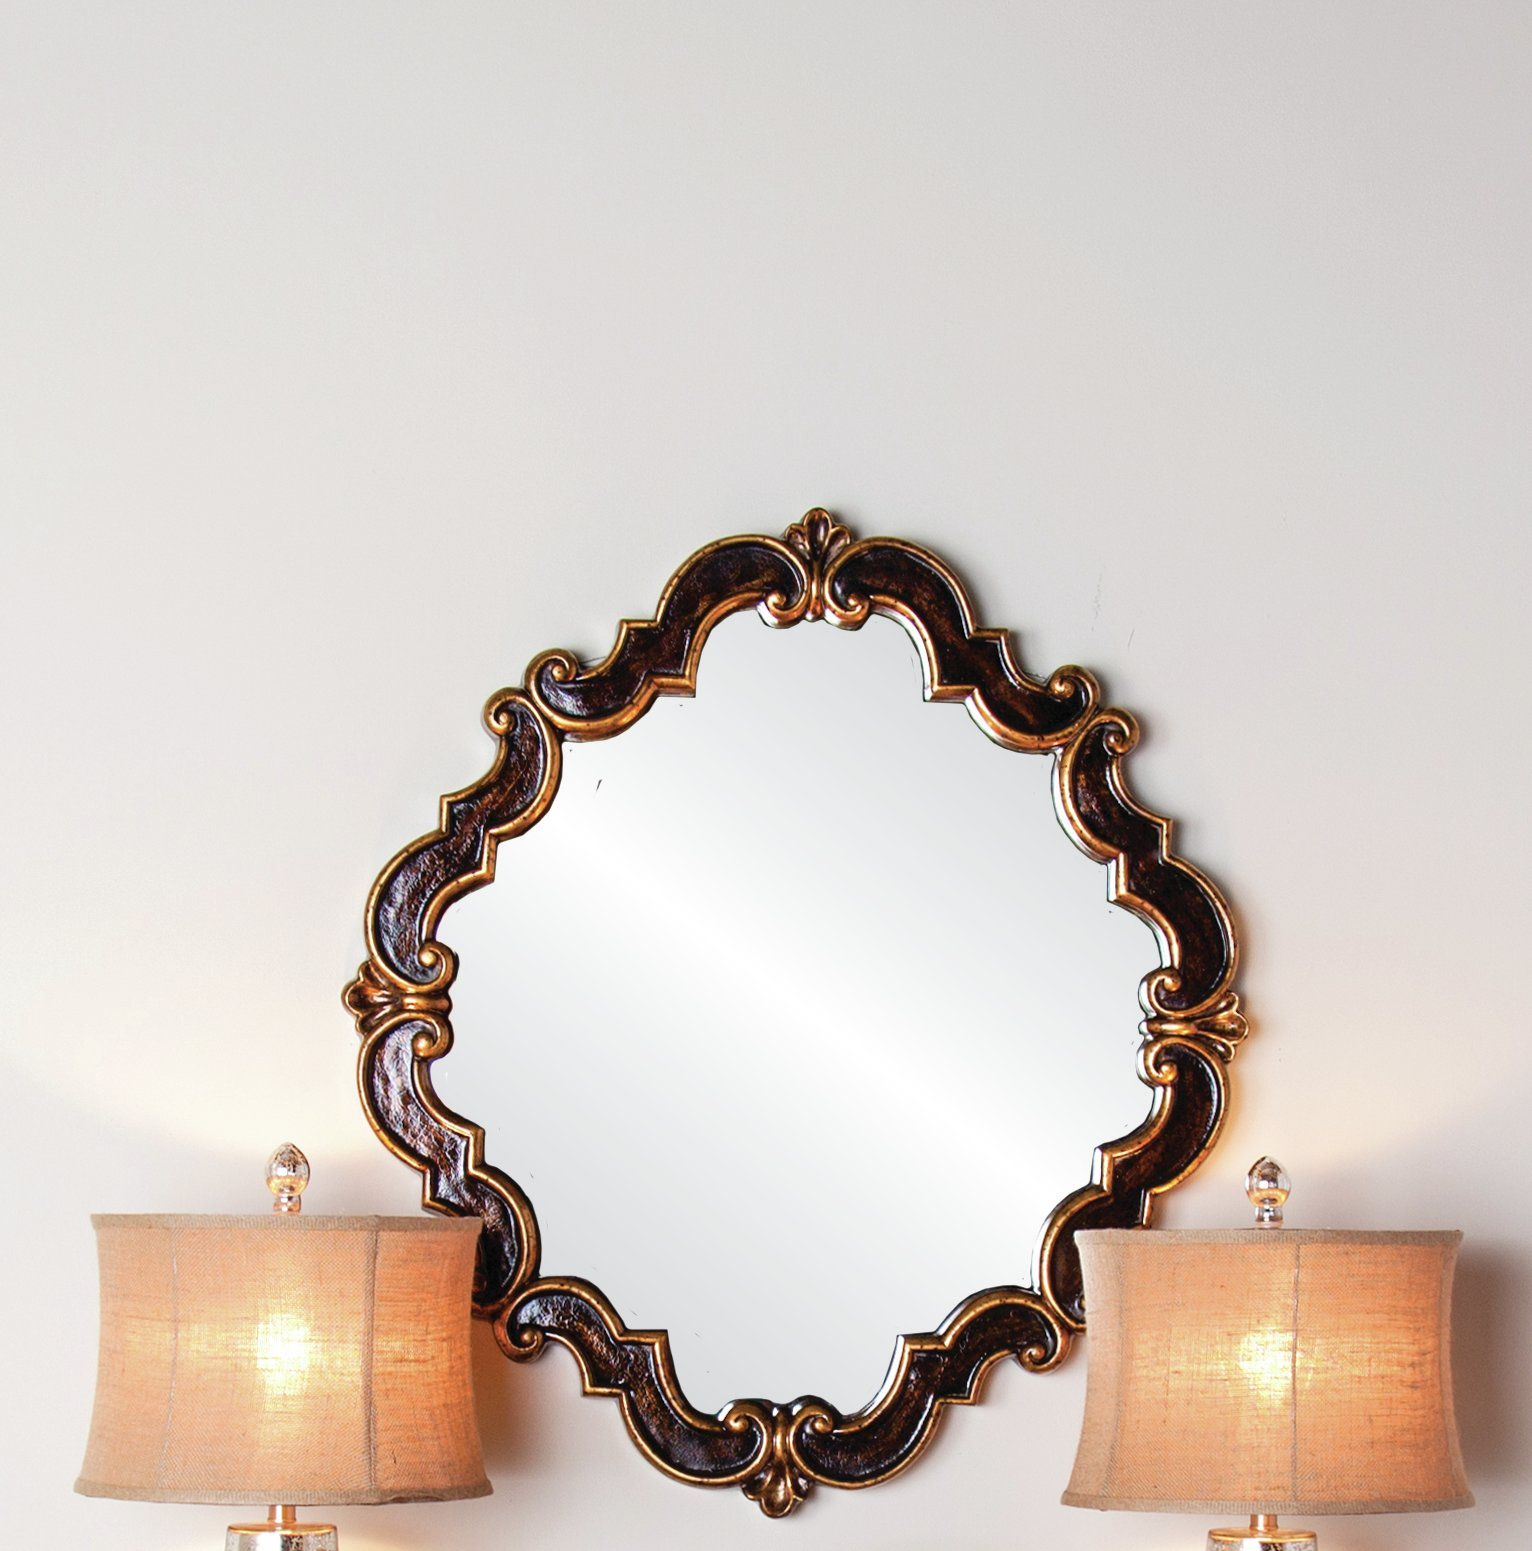 Mandurah Medallion Accent Mirror Intended For Medallion Accent Mirrors (View 17 of 30)